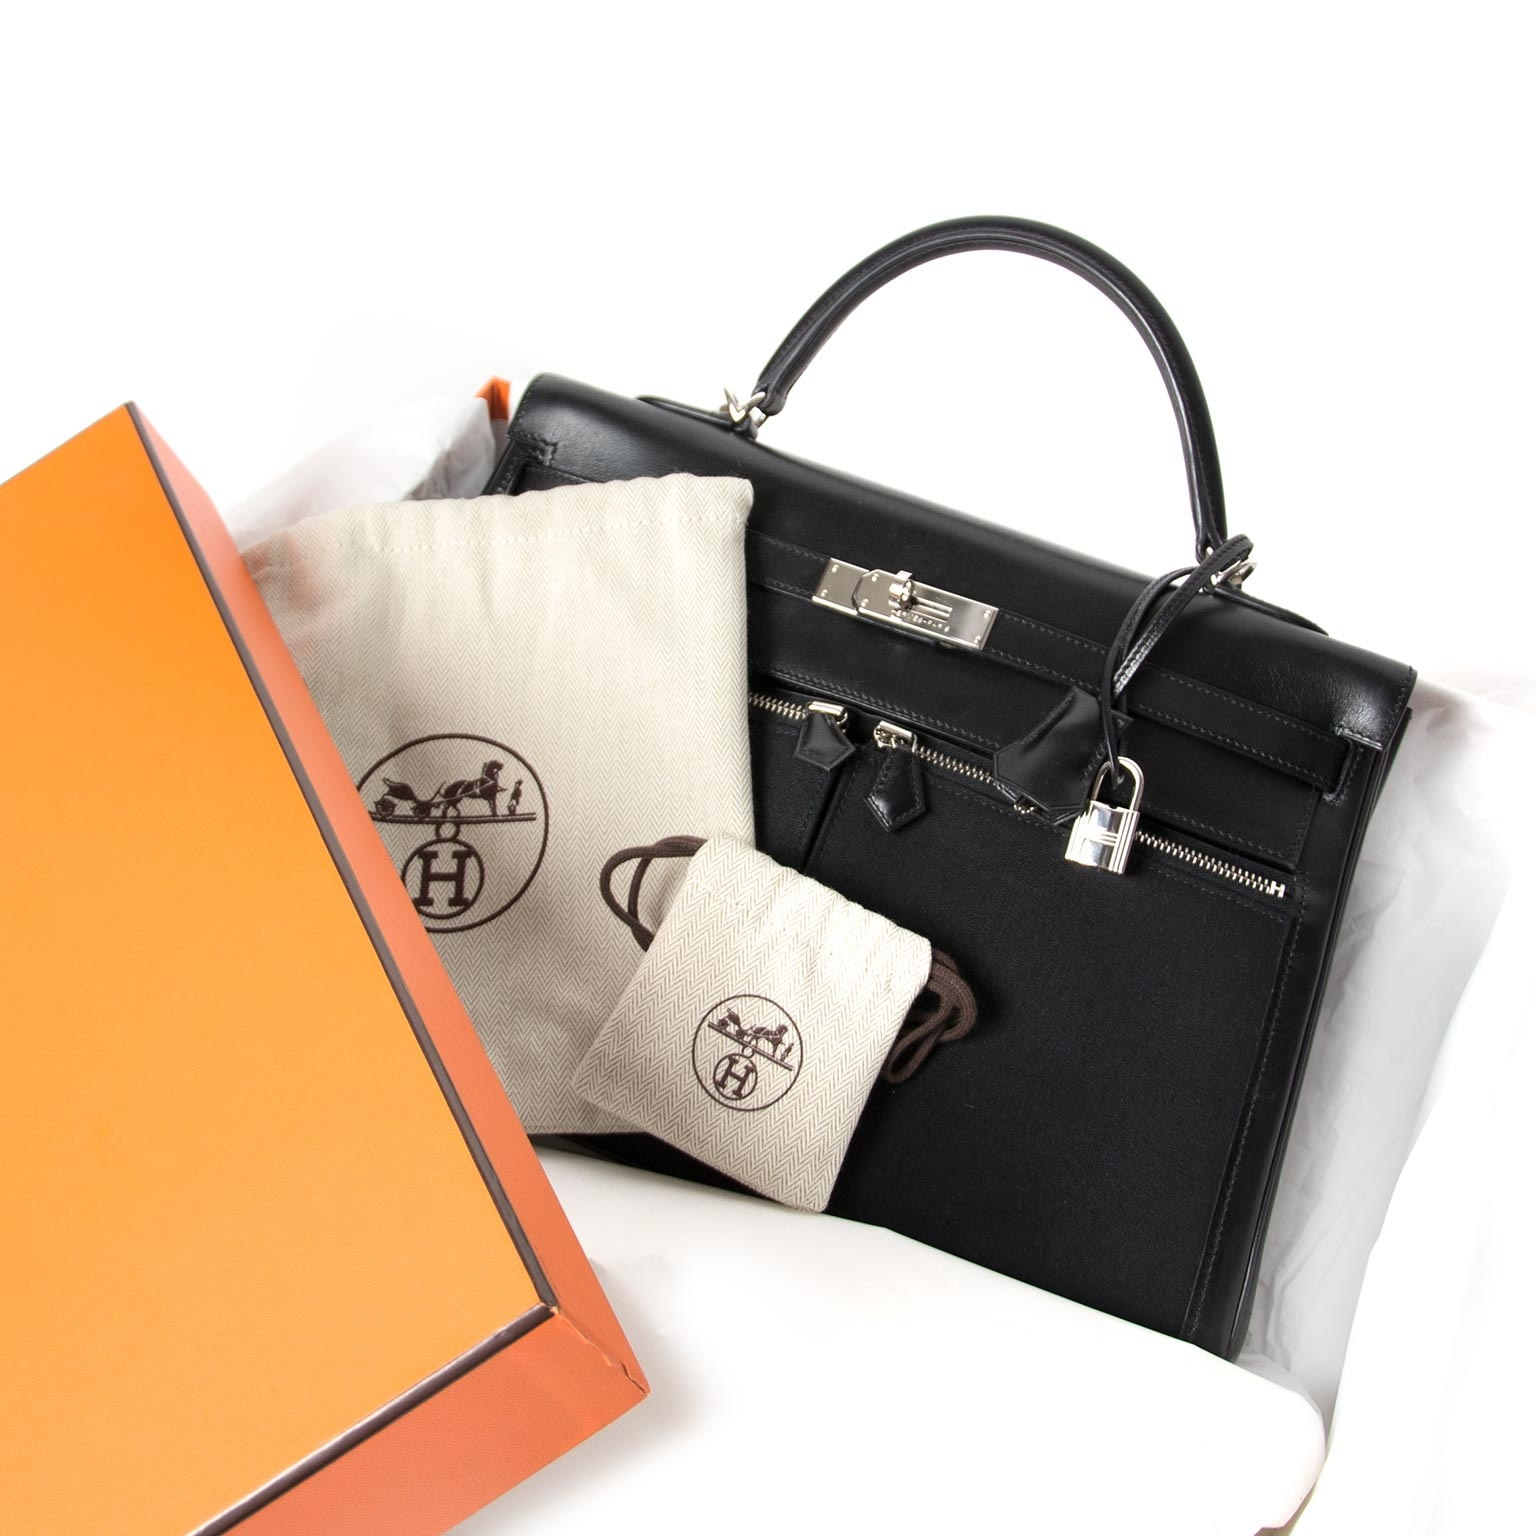 c083dcd7d1c ... Hermès Kelly 35cm Lakis Black Boxcalf Leather with Toile PHW · Hermes